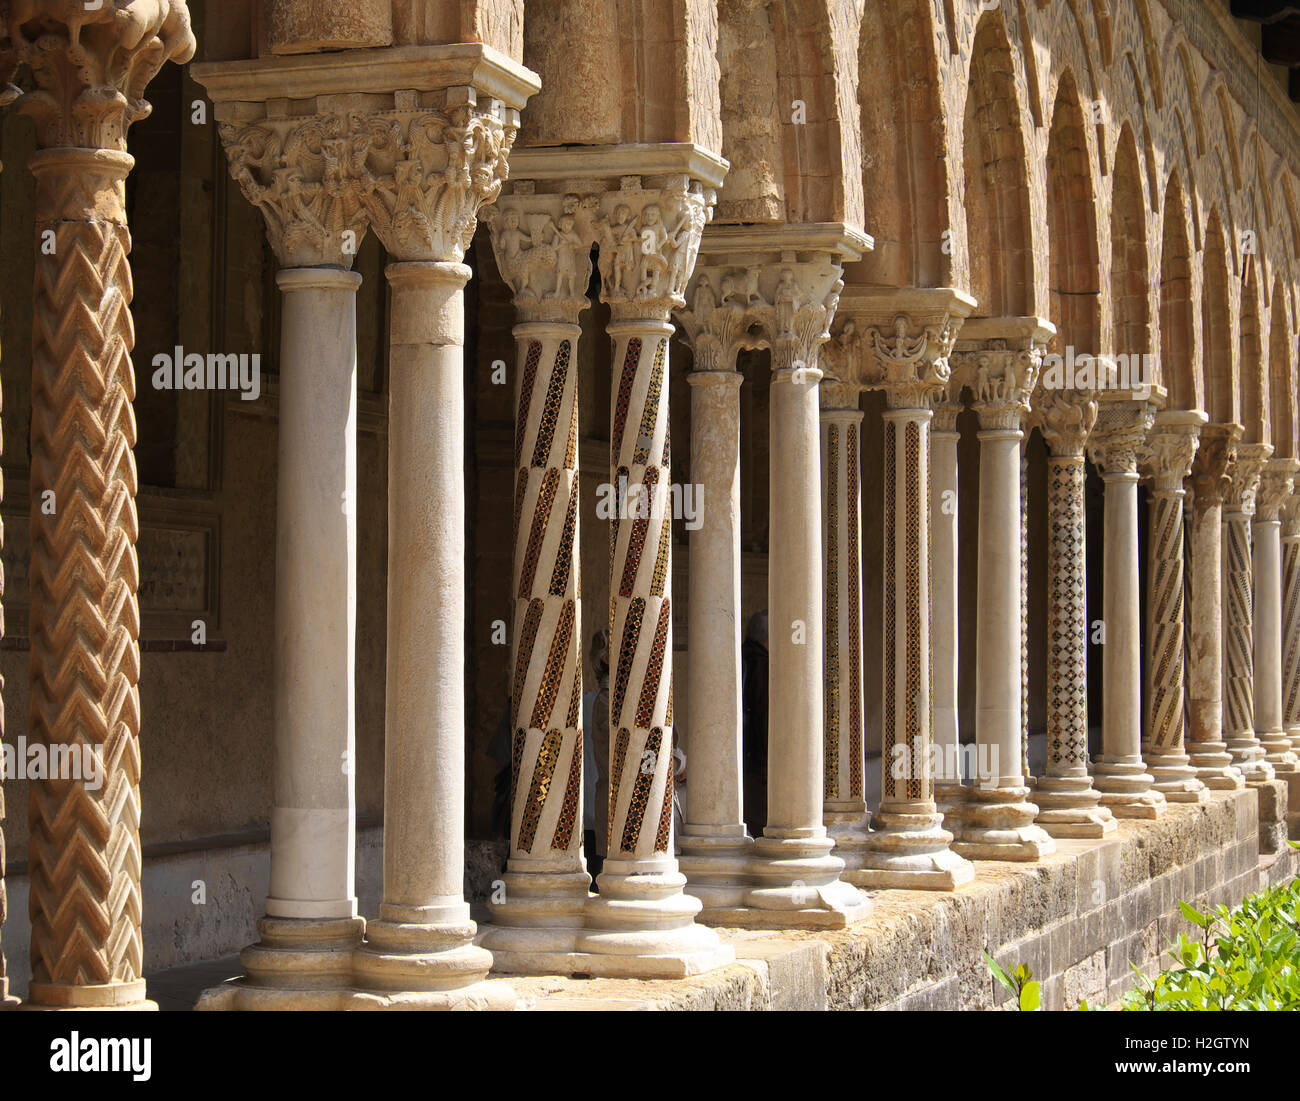 Cloister with ornate pillars in the courtyard of Monreale Cathedral, Monreale, Sicily, Italy - Stock Image